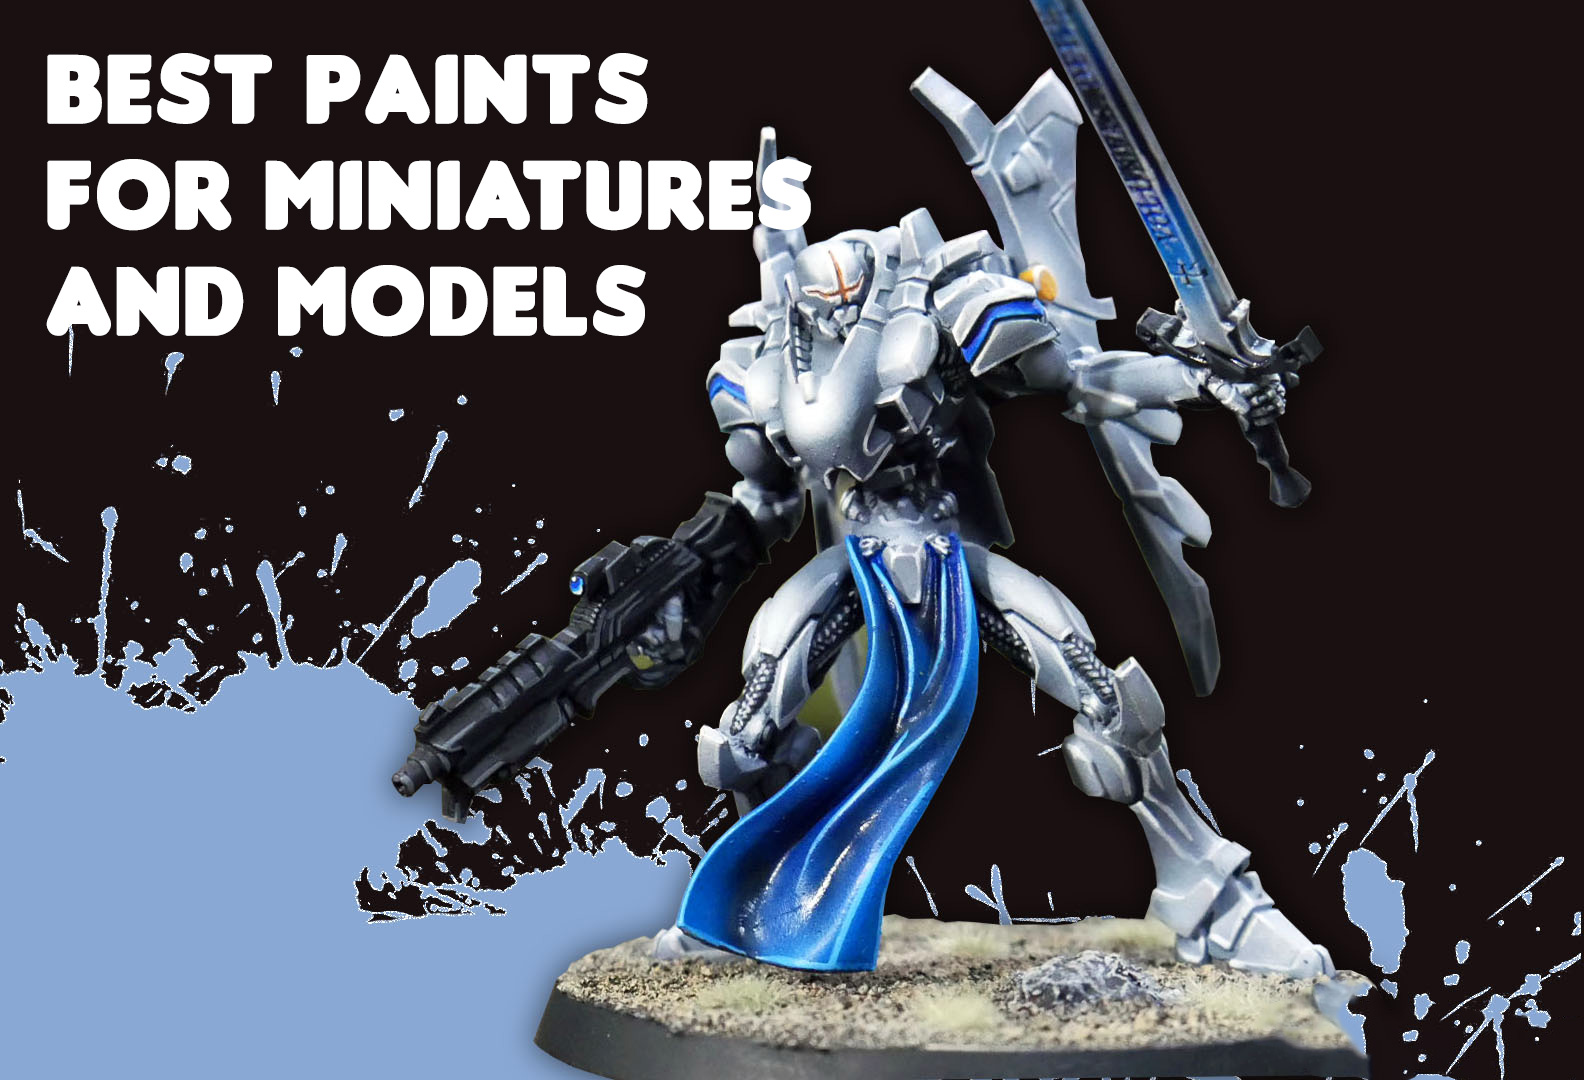 Best Paints for Miniatures and Models